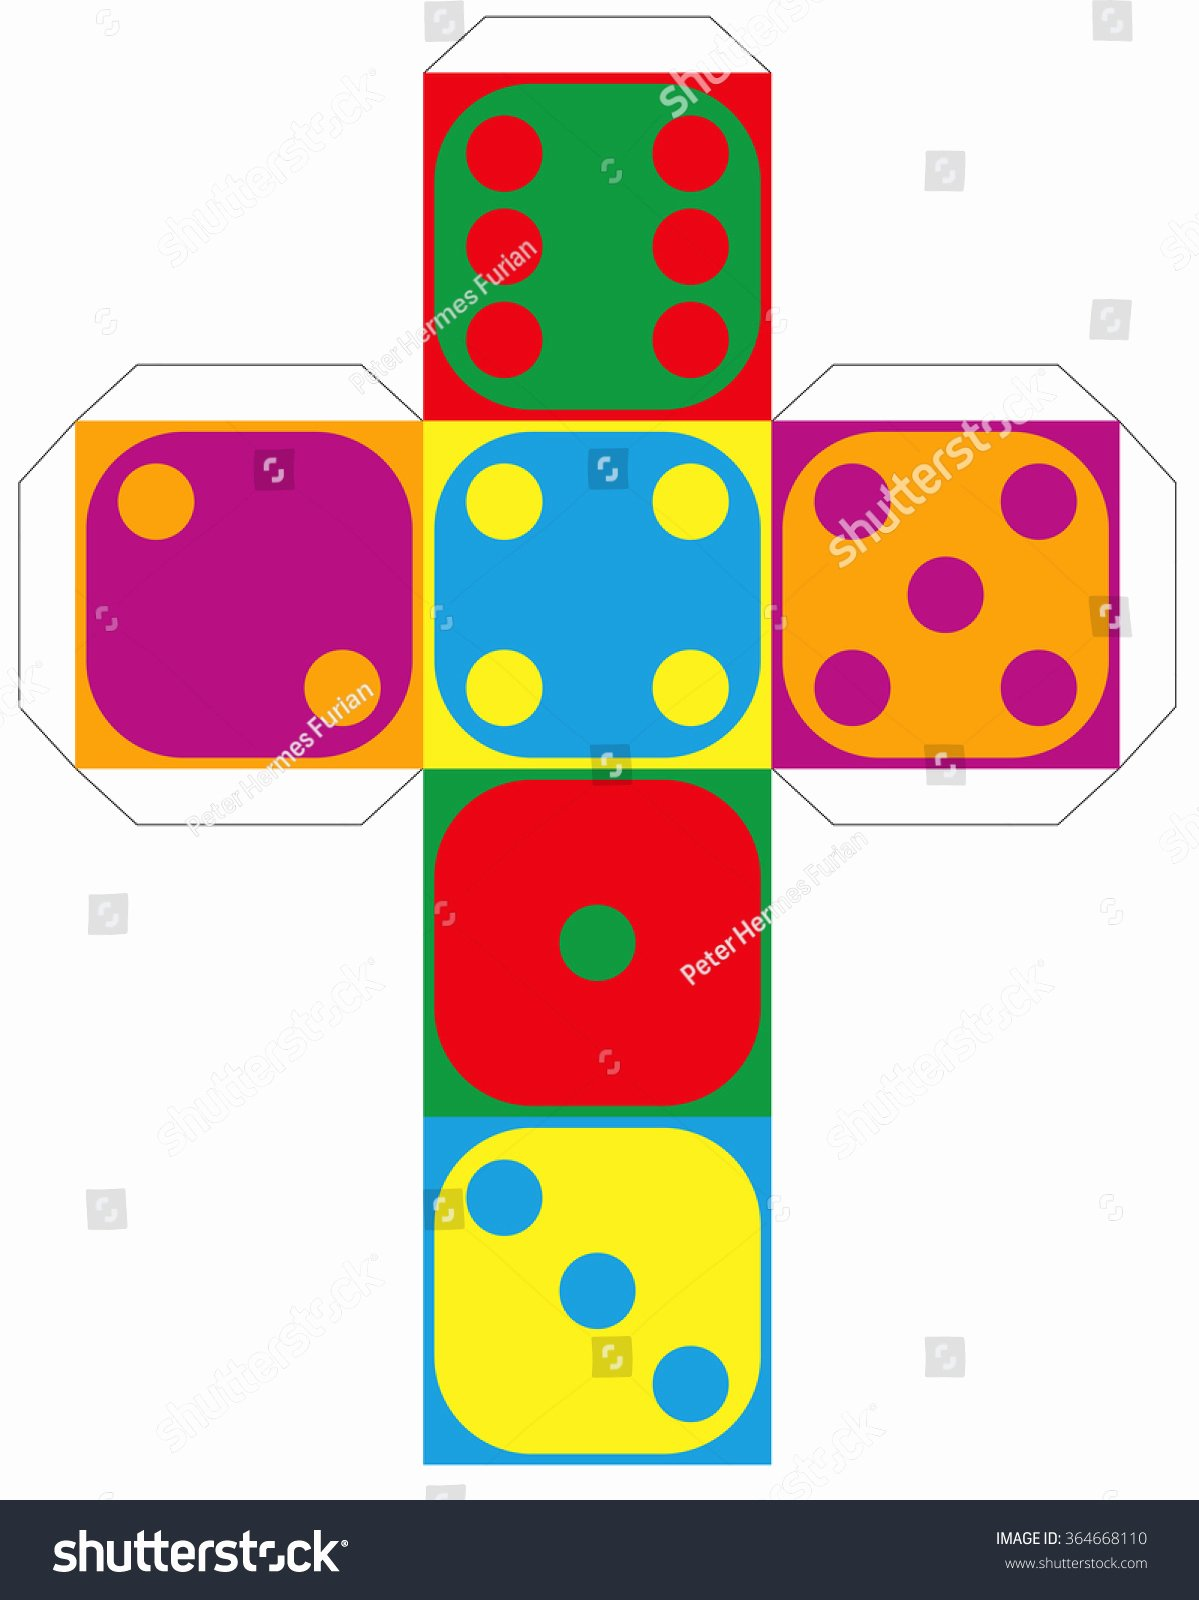 Editable Dice Template New Dice Template Model A Colorful Cube to Make A Three